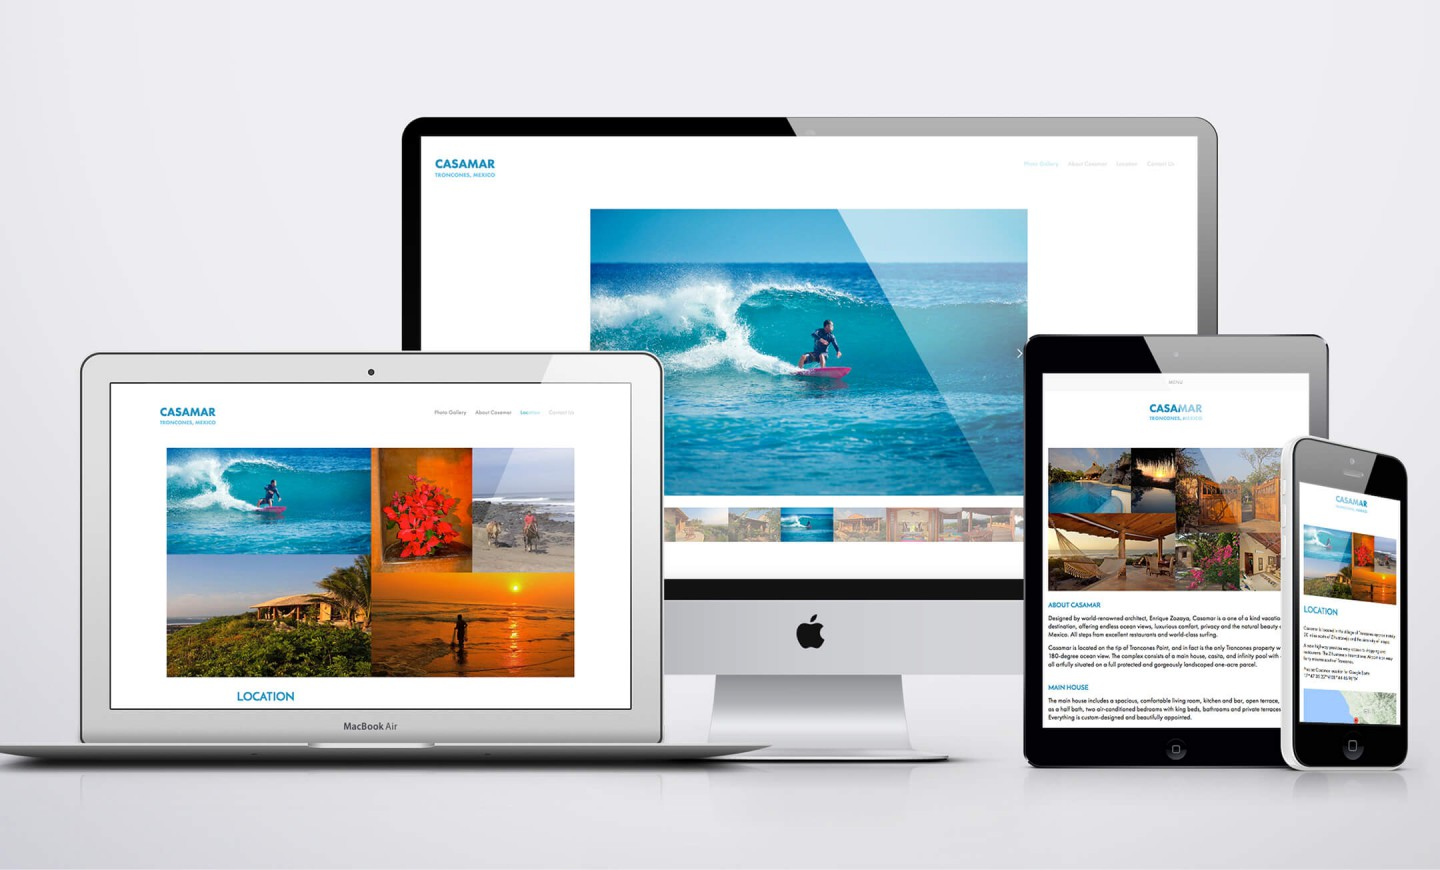 Responsive web design views of Casamar website